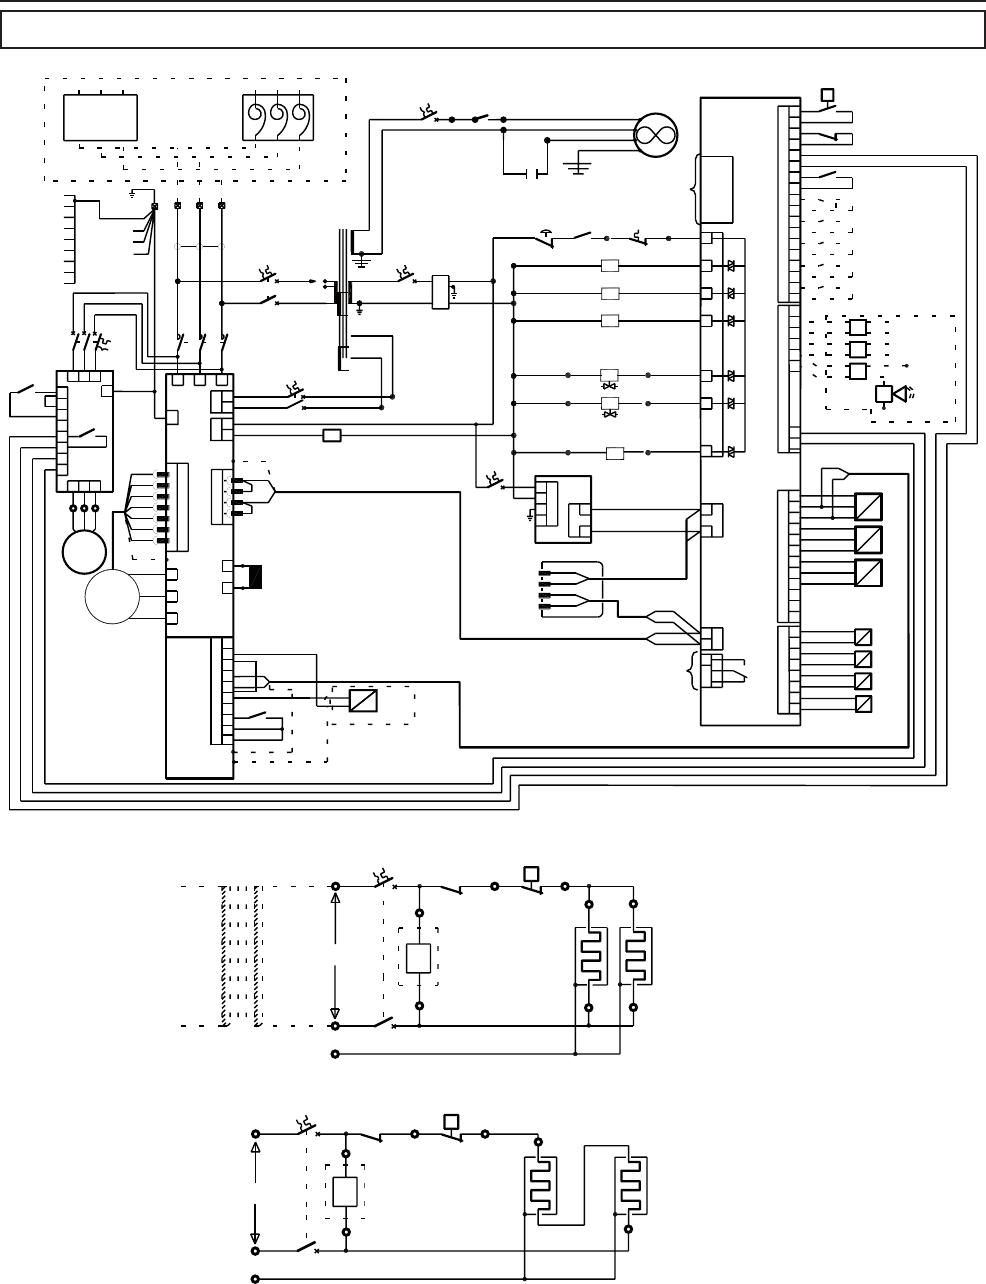 ingersoll rand air compressor wiring diagram Download-Wiring Diagram Detail Name ingersoll rand air pressor wiring diagram – Ingersoll 4-f